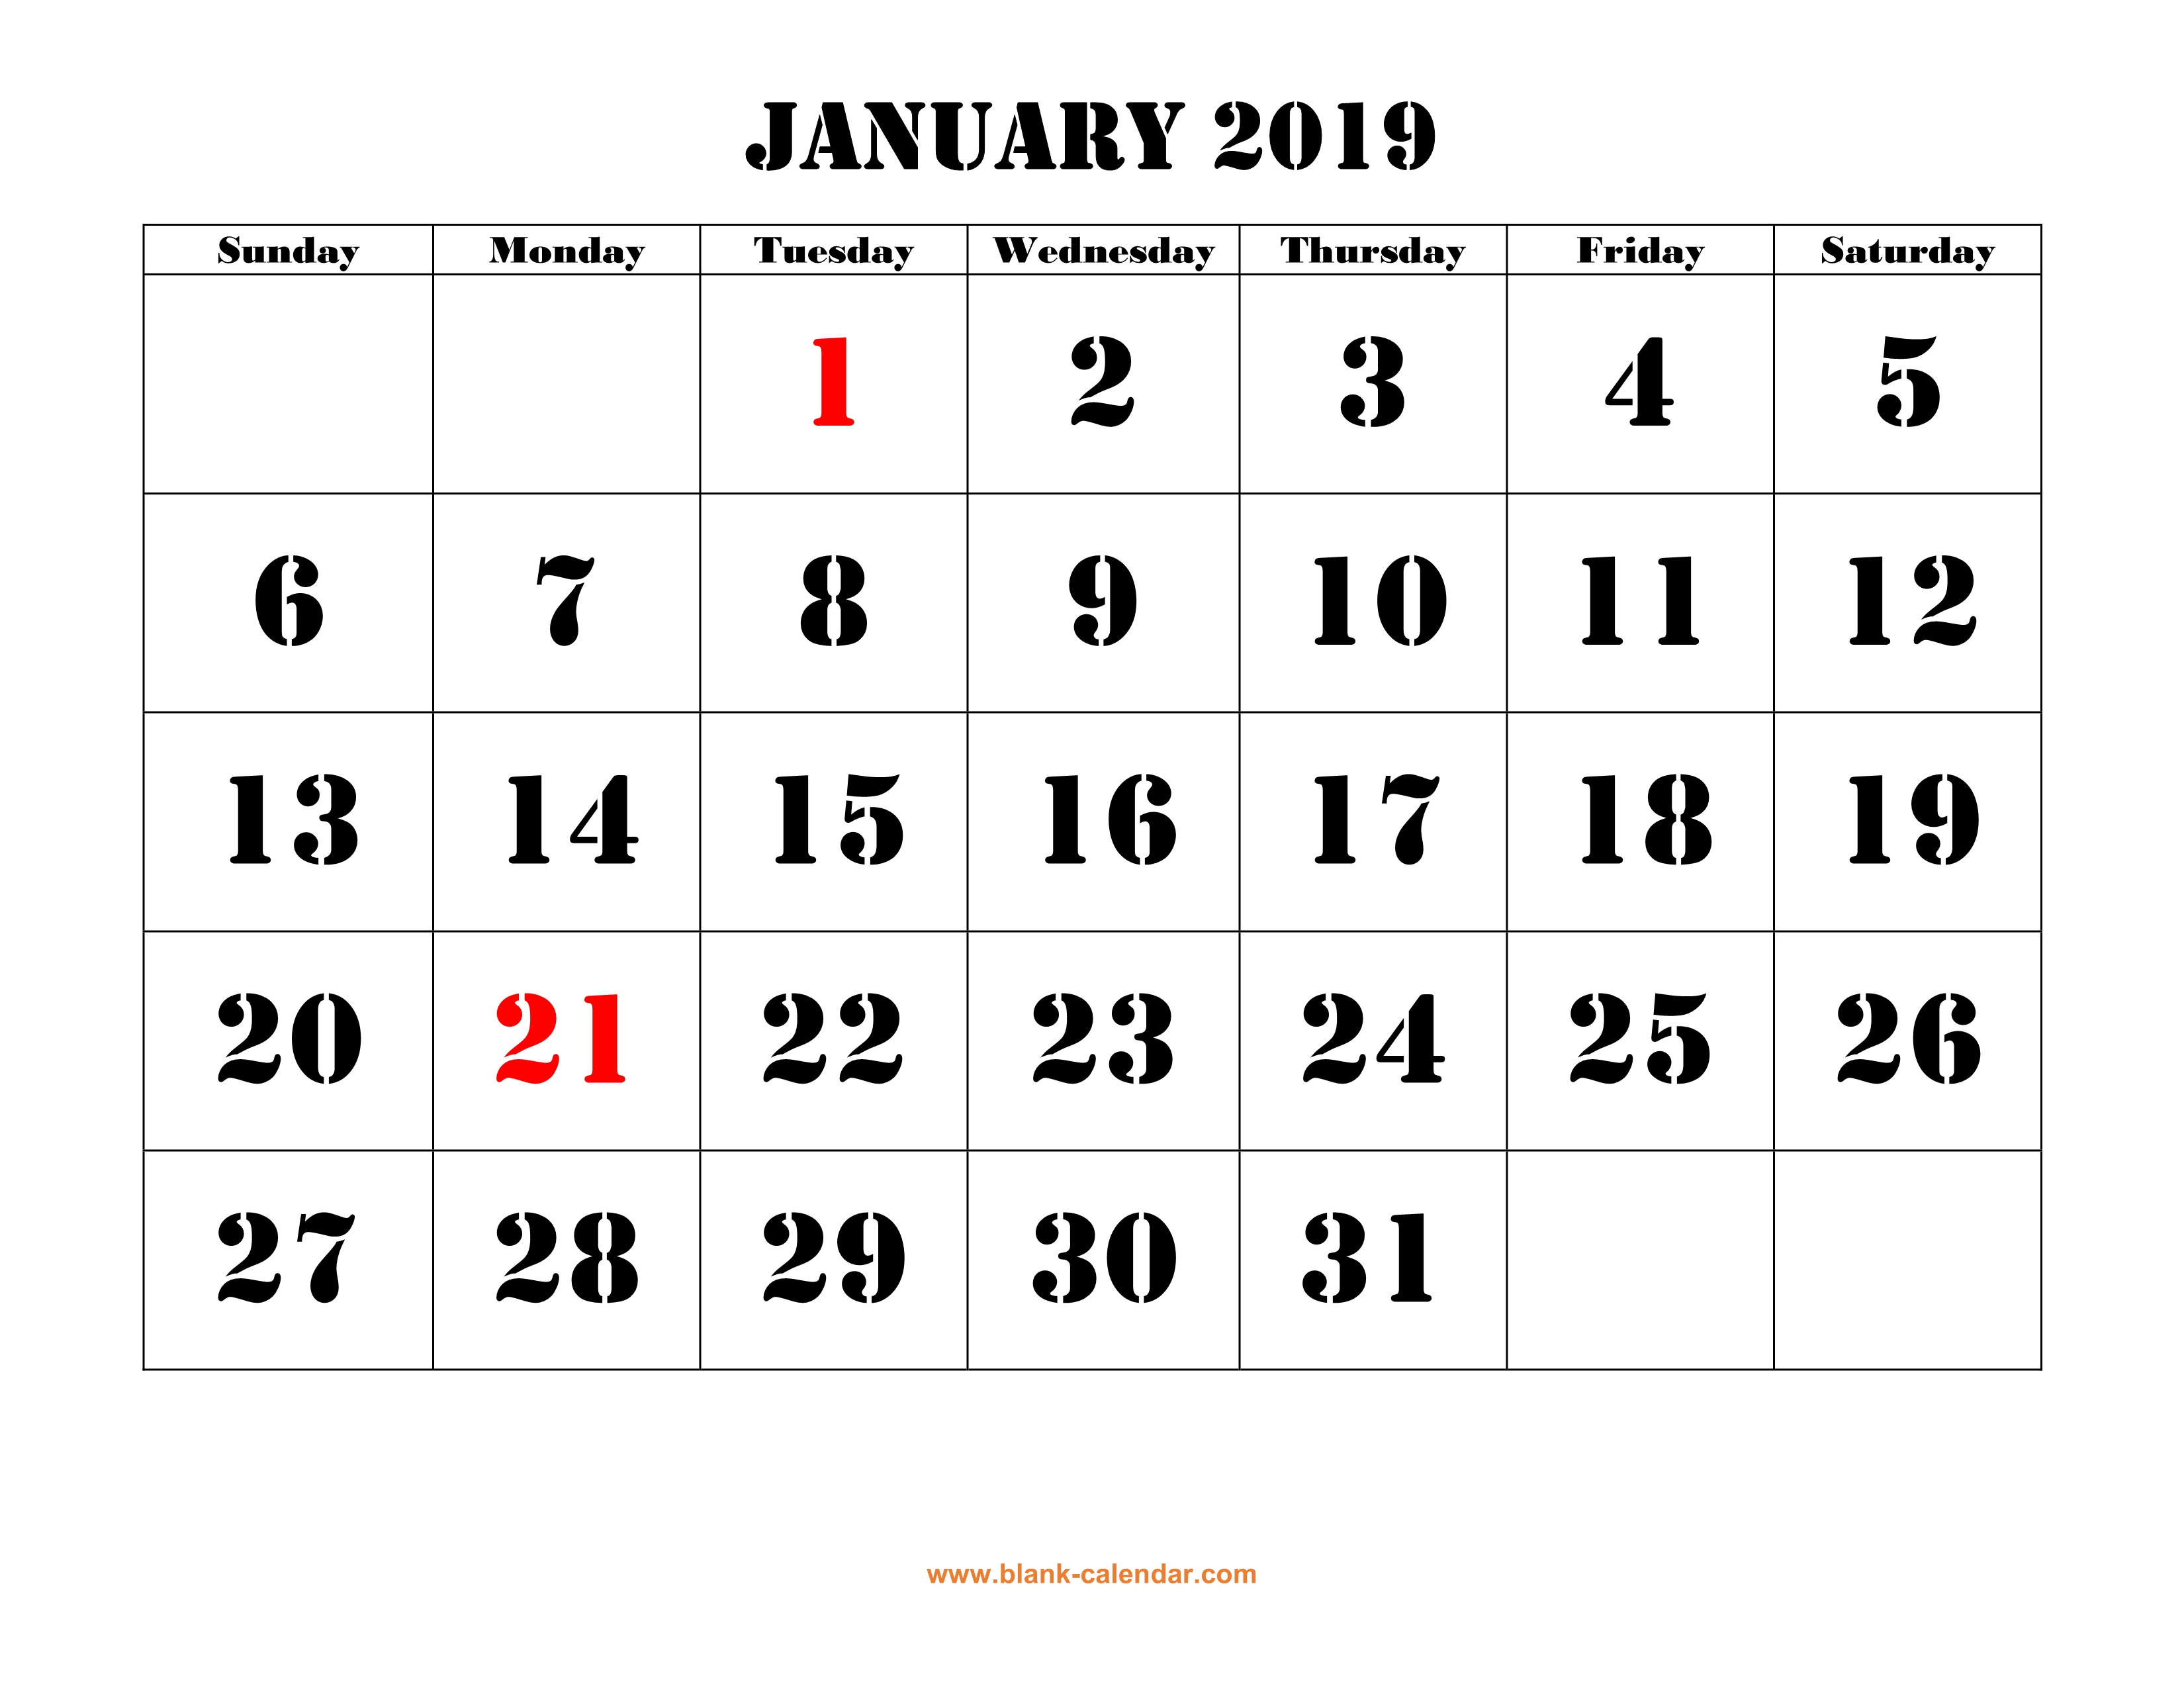 Next Year Calendar 2019 With Printable Free Download Yearly Templates